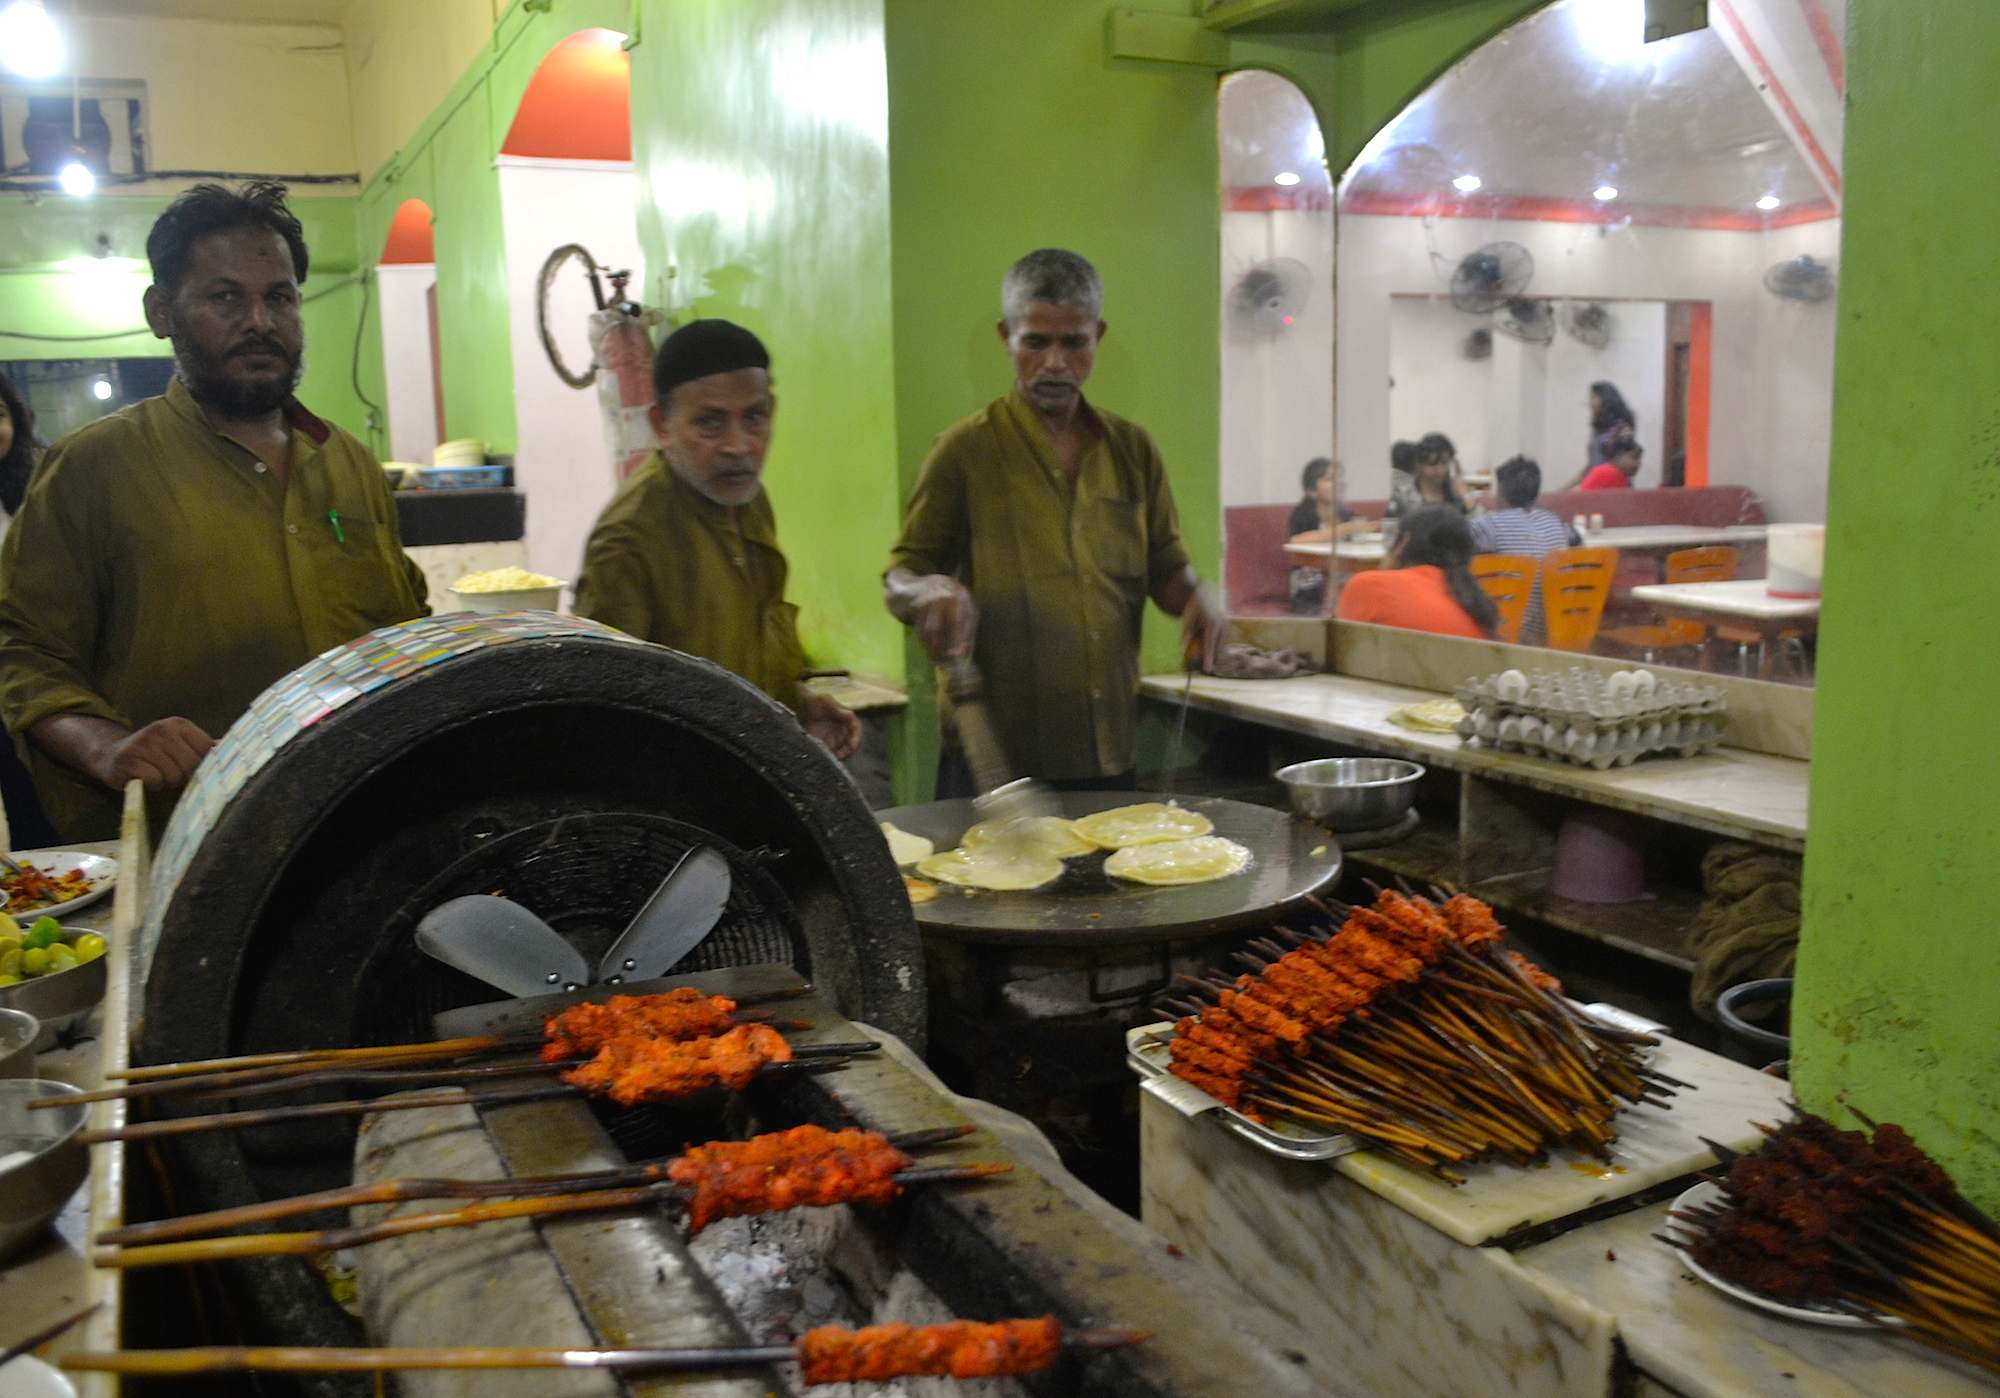 Kolkata Food A Dining Guide To Restaurants And Dishes Cnn